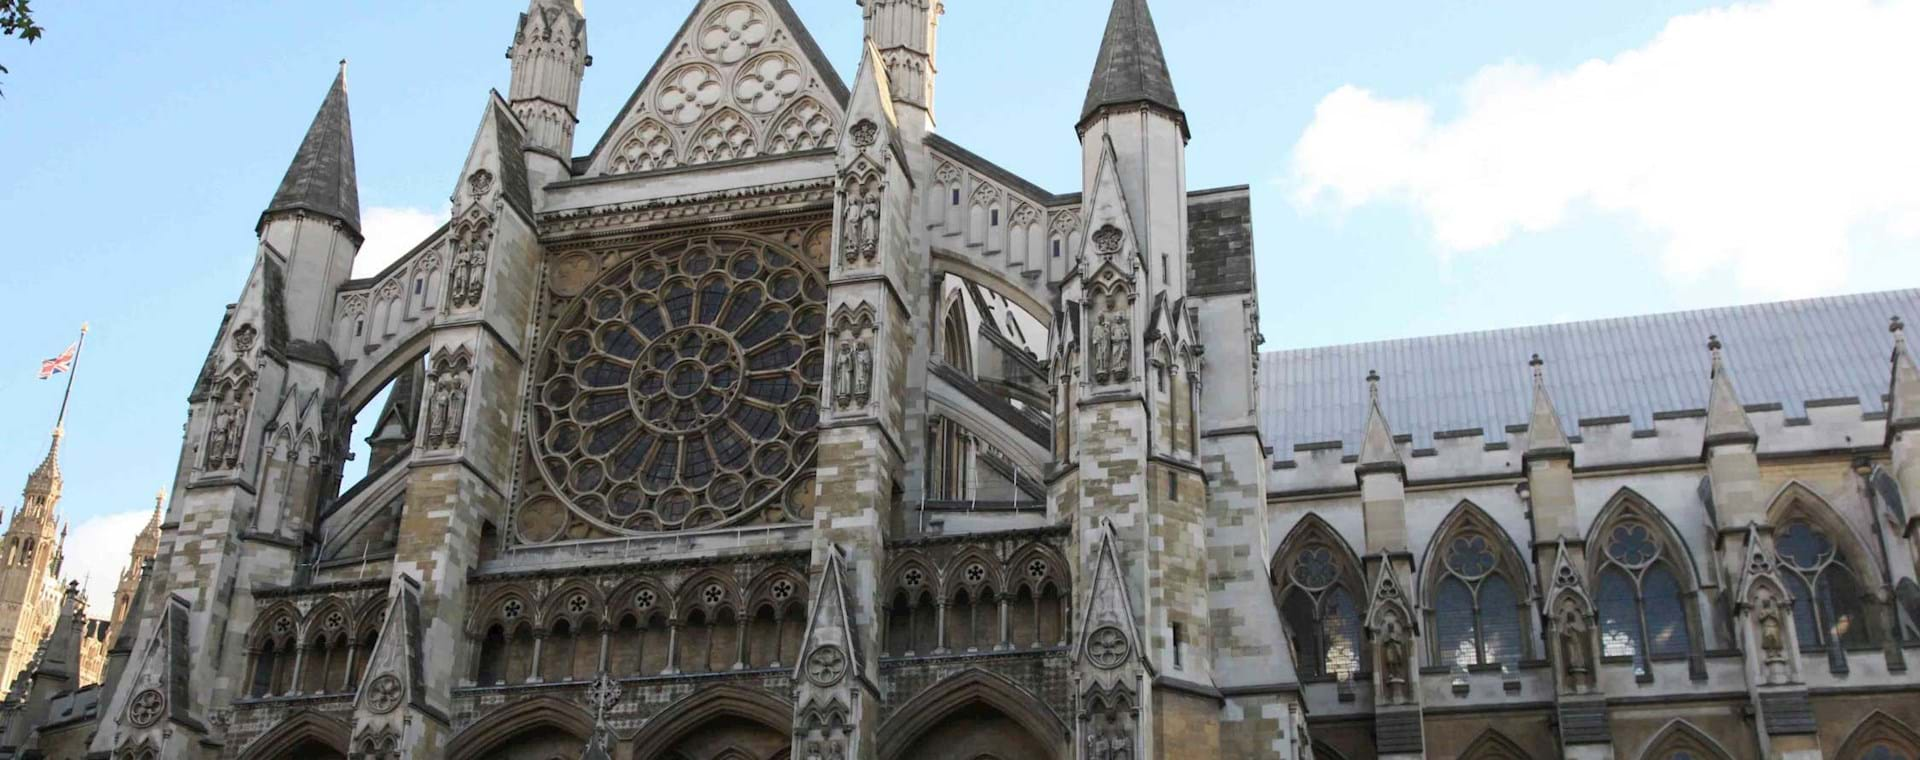 Westminster Abbey Tour & Changing of the Guard with Expert Commentary